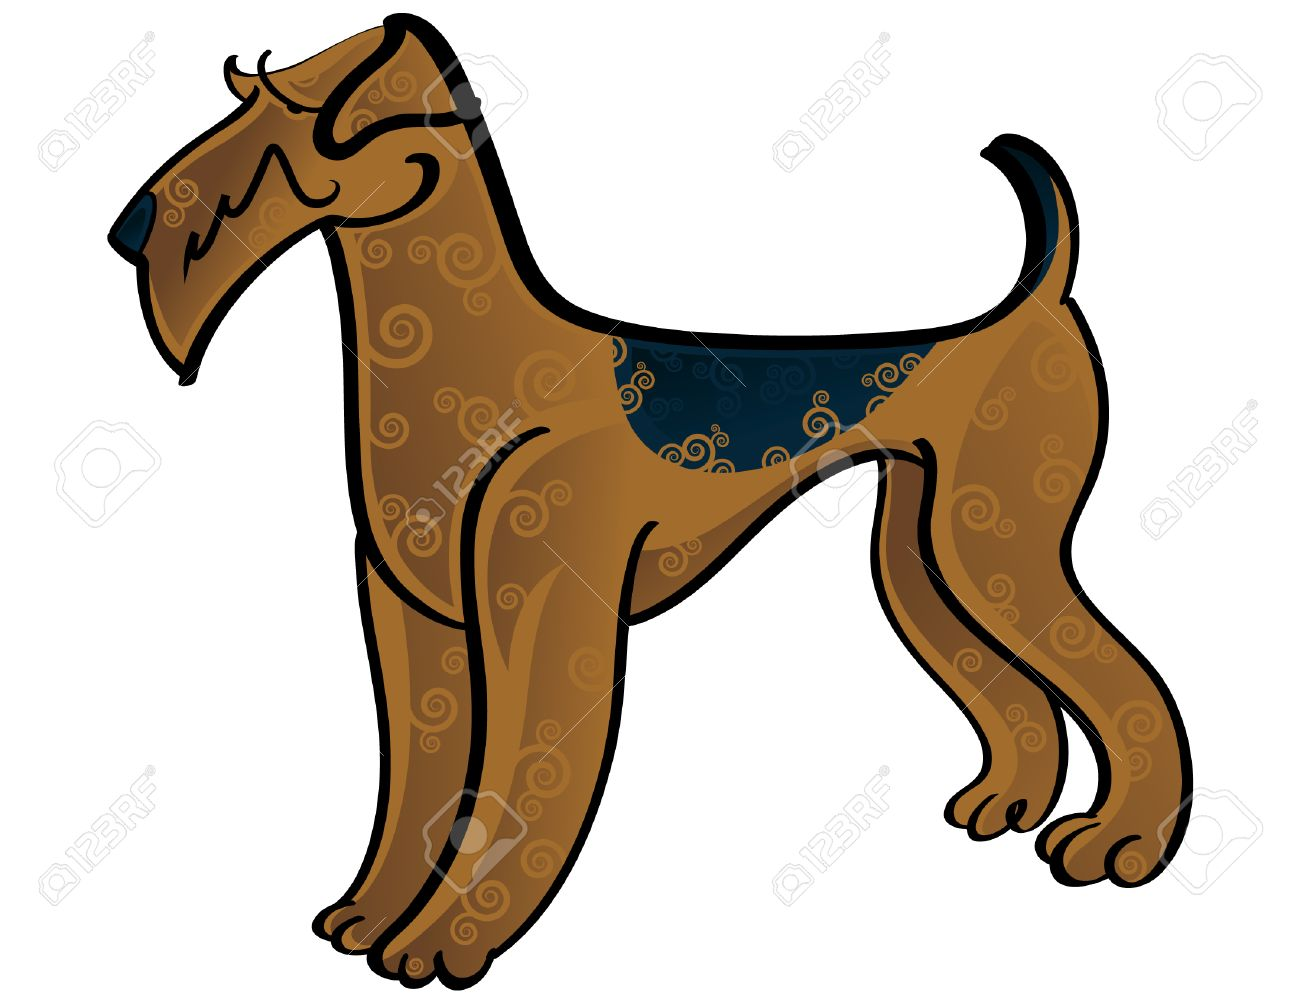 Colorful Vector Illustration Of The Dog Airedale Terrier Royalty.